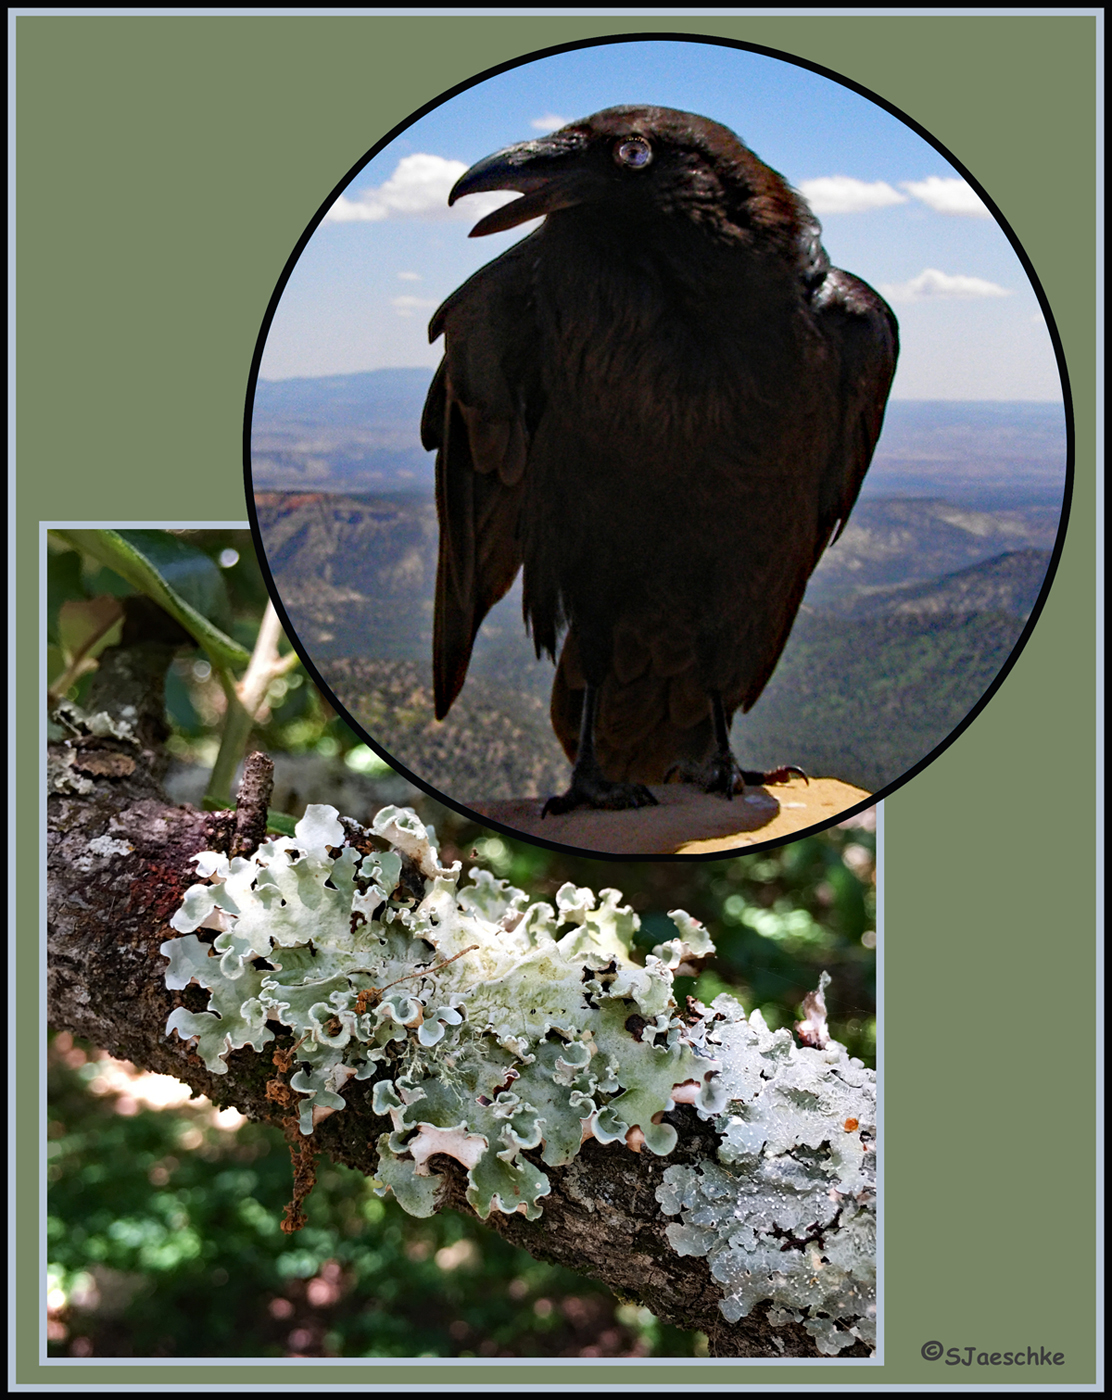 Post_2017-06-01_Image_Collage-Lichen-Raven